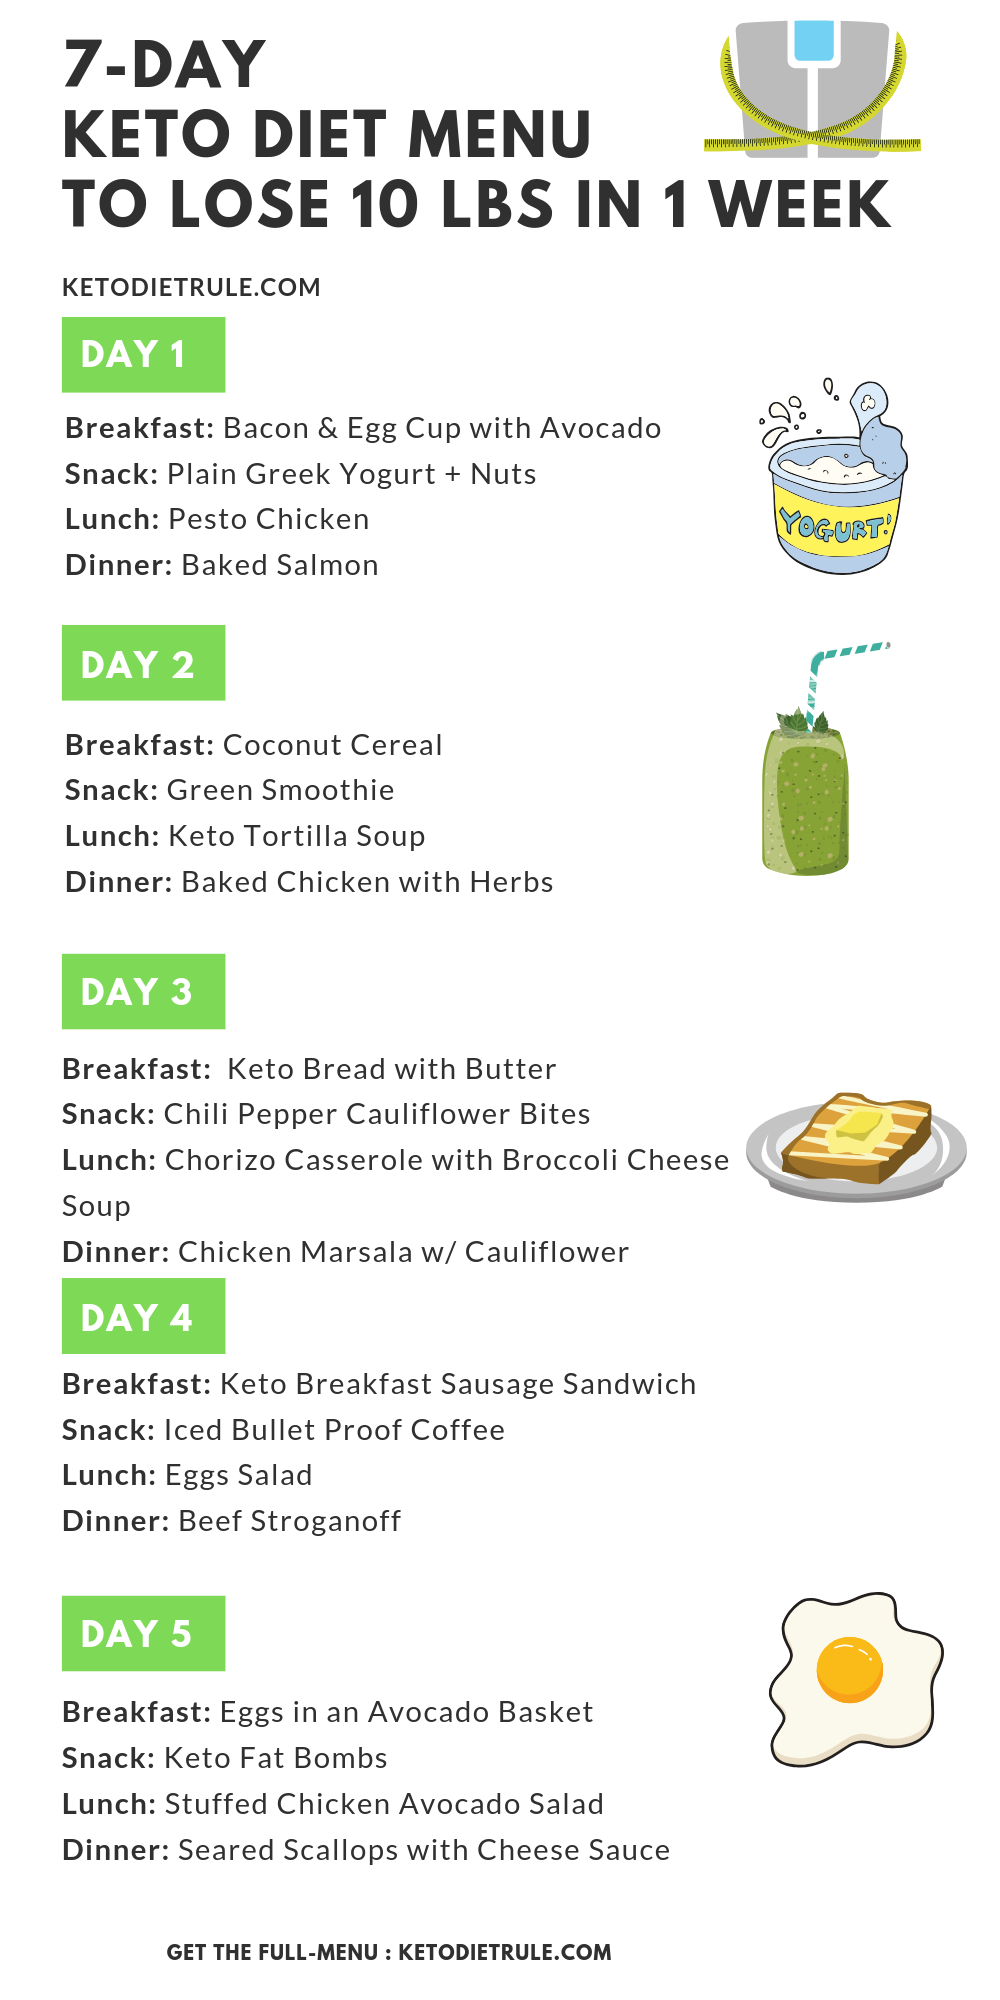 7-Day Keto Diet Meal Plan and Menu for Beginners to Lose Weight #ketodietforbeginners